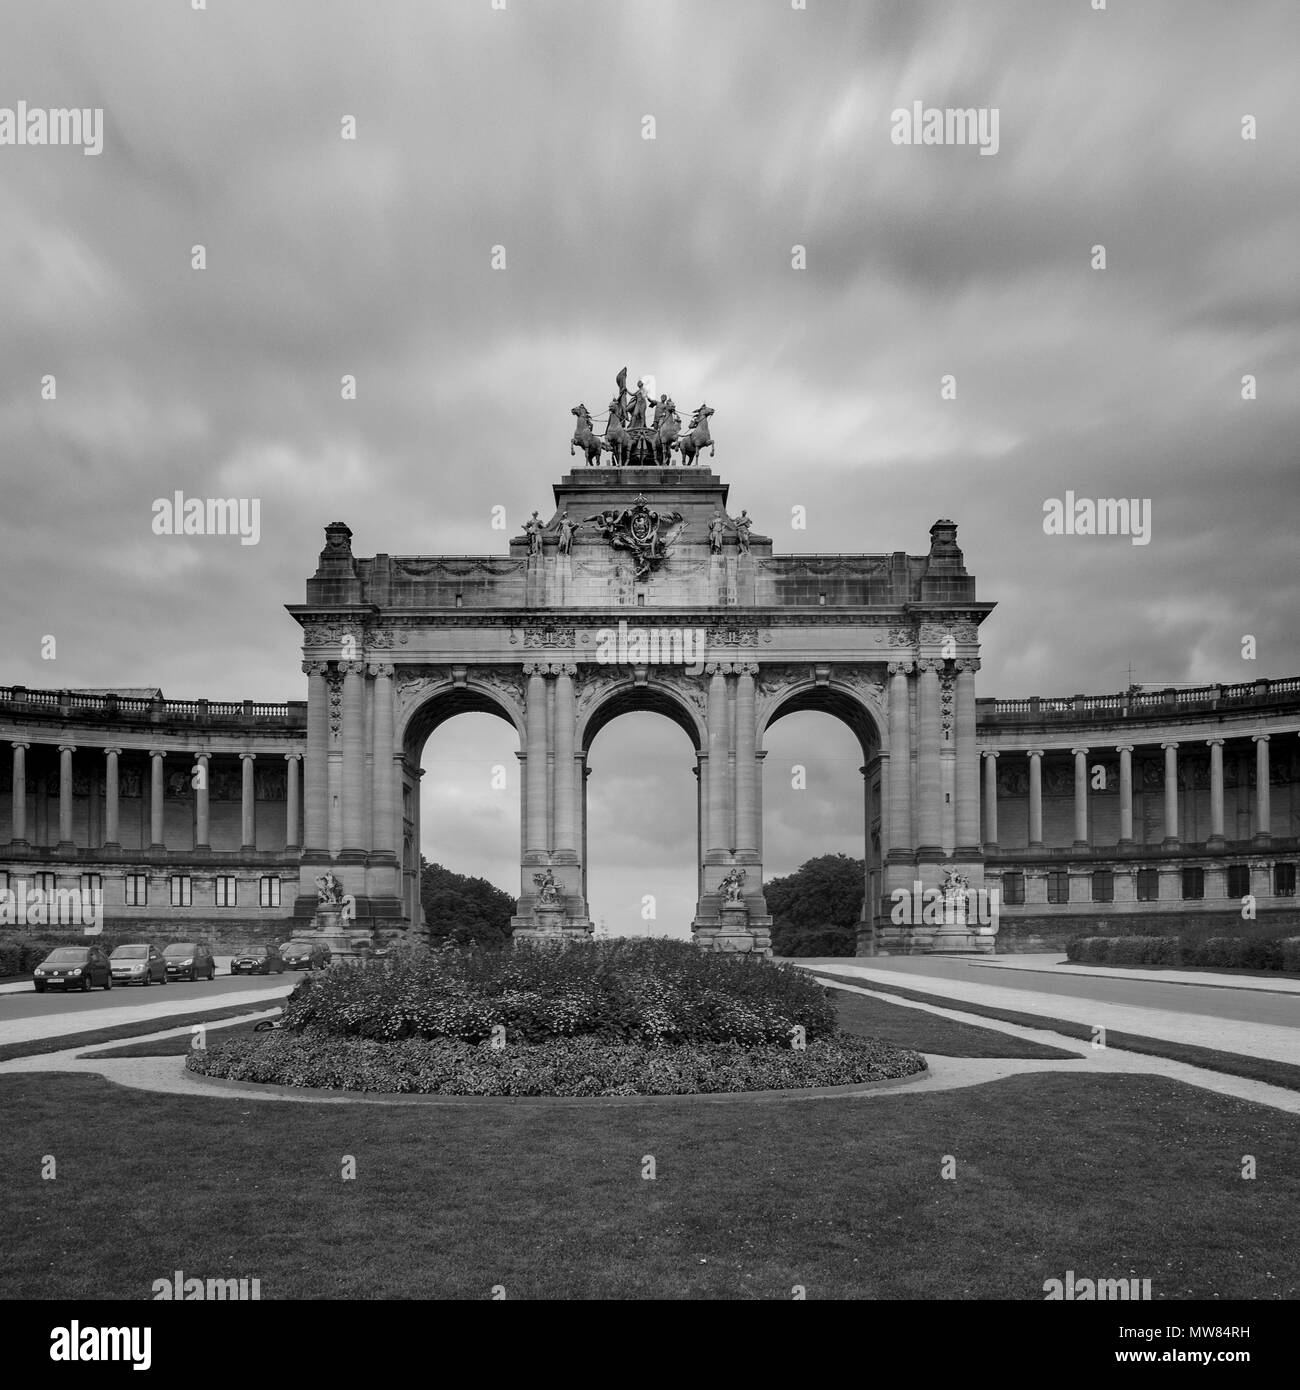 Long exposure B&W image of the The Triumphal Arch in Cinquantenaire Parc in Brussels - Stock Image